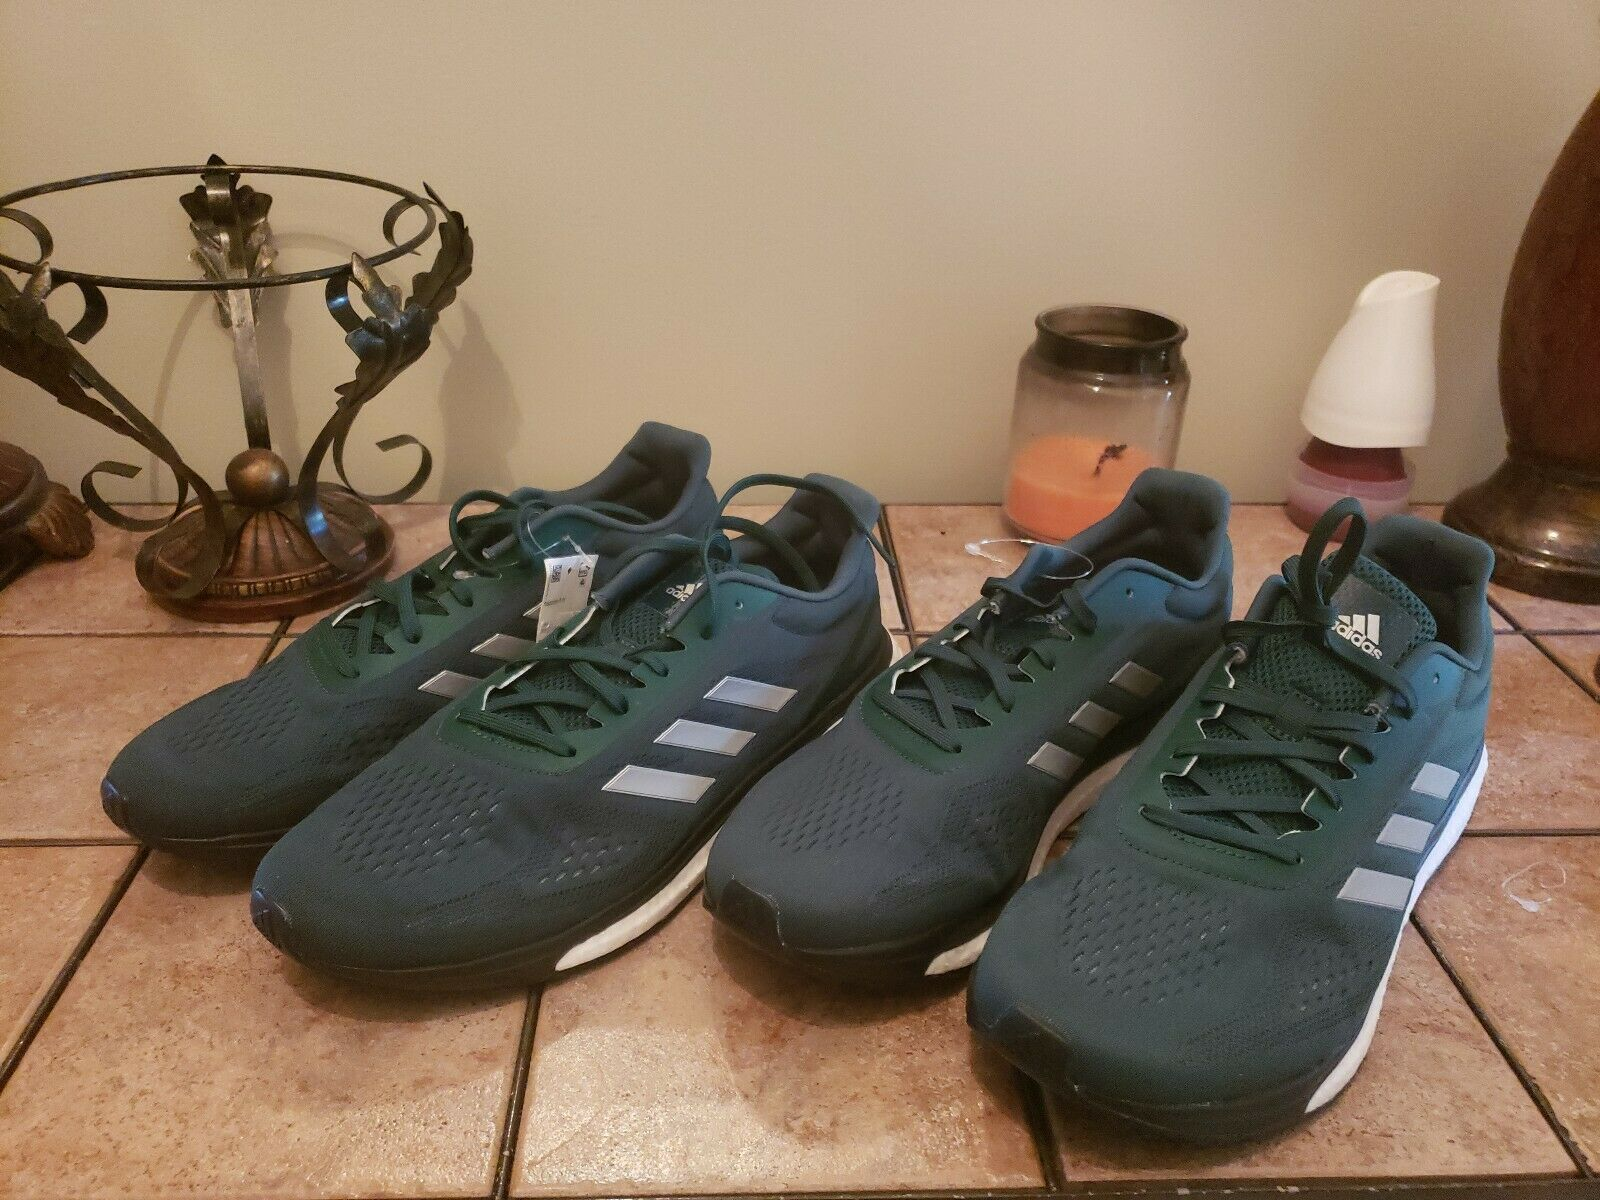 New Adidas Response Limited LT Boost Mens Running shoes. Size 12. Green CP9688